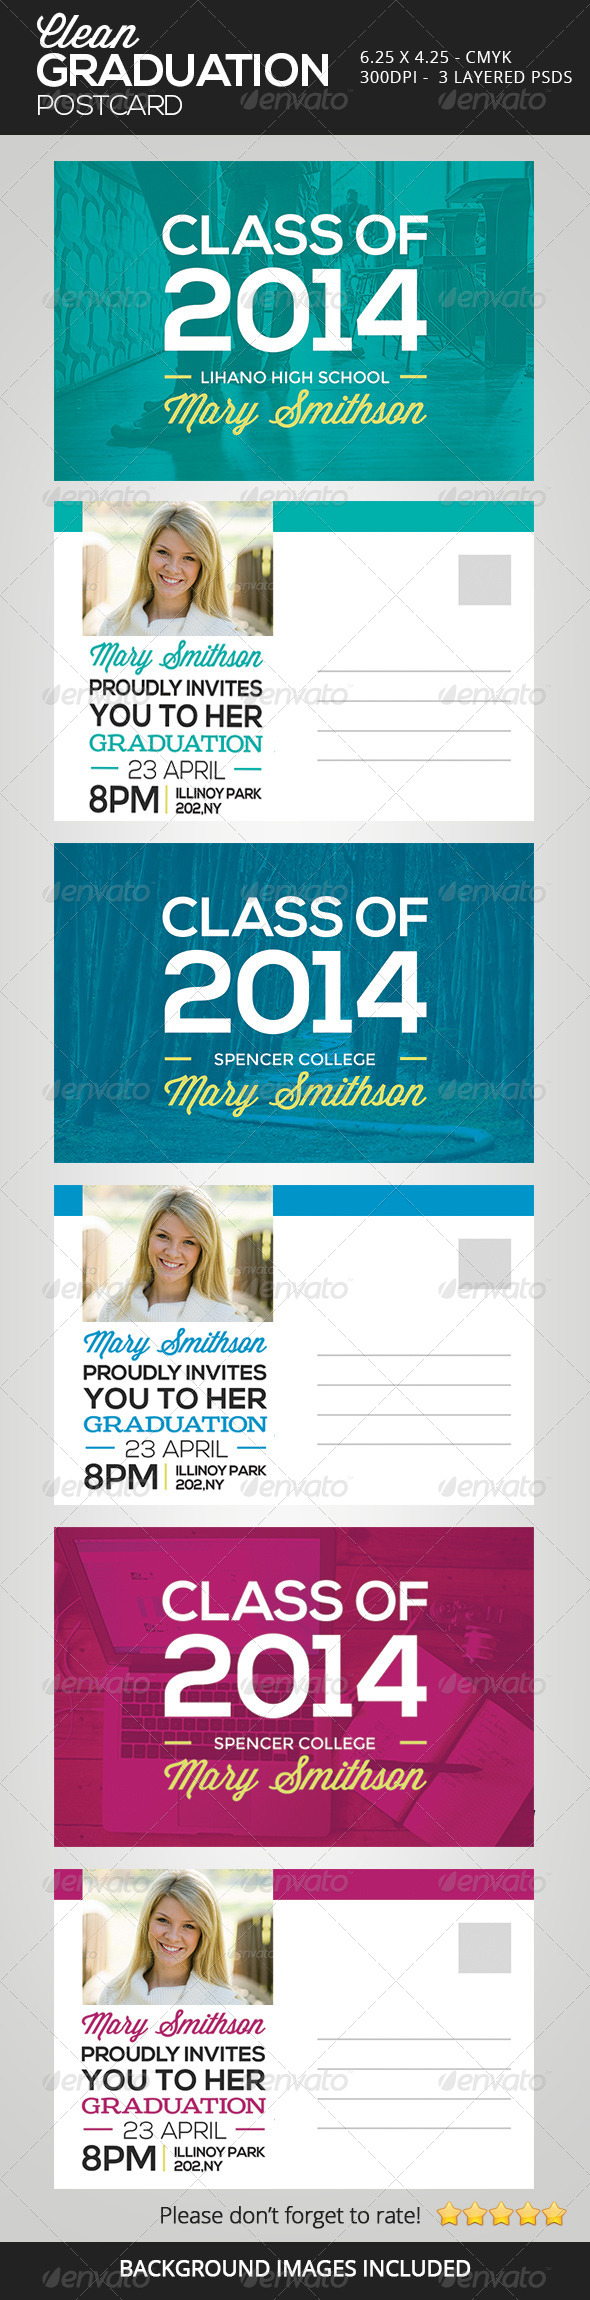 Clean Graduation Postcards - Invitations Cards & Invites